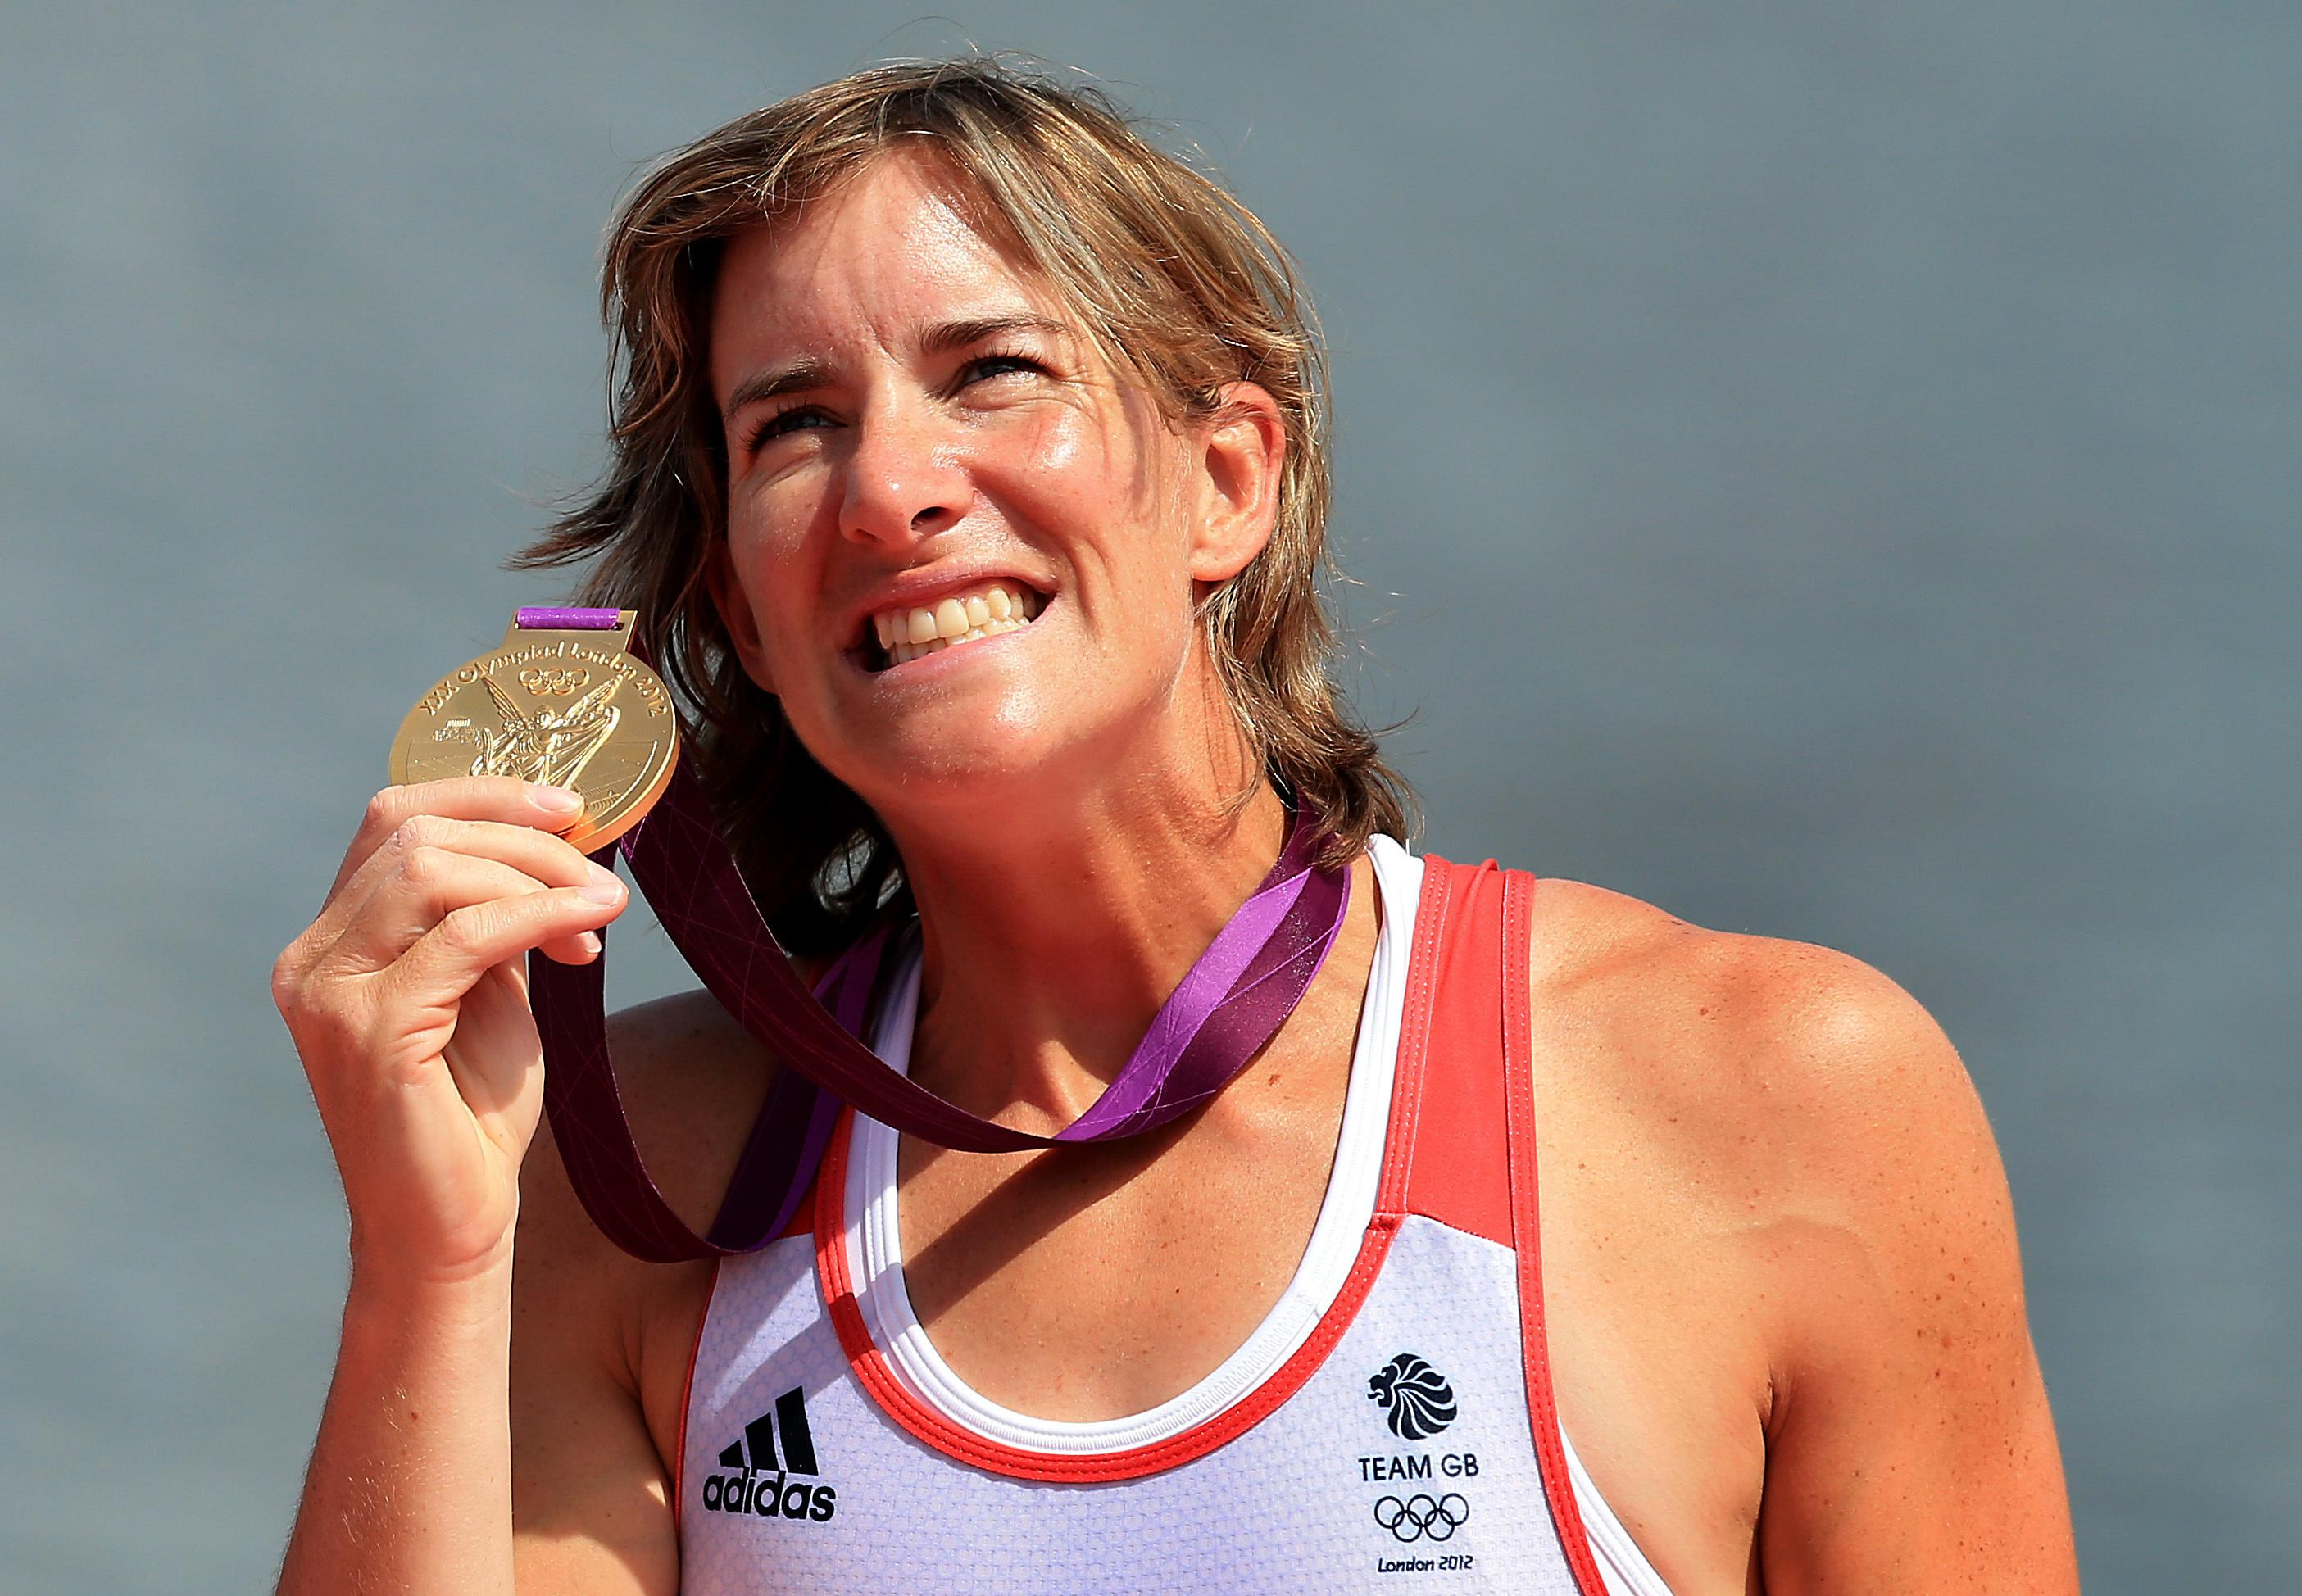 Katherine Grainger is Britain's most decorated female Olympian